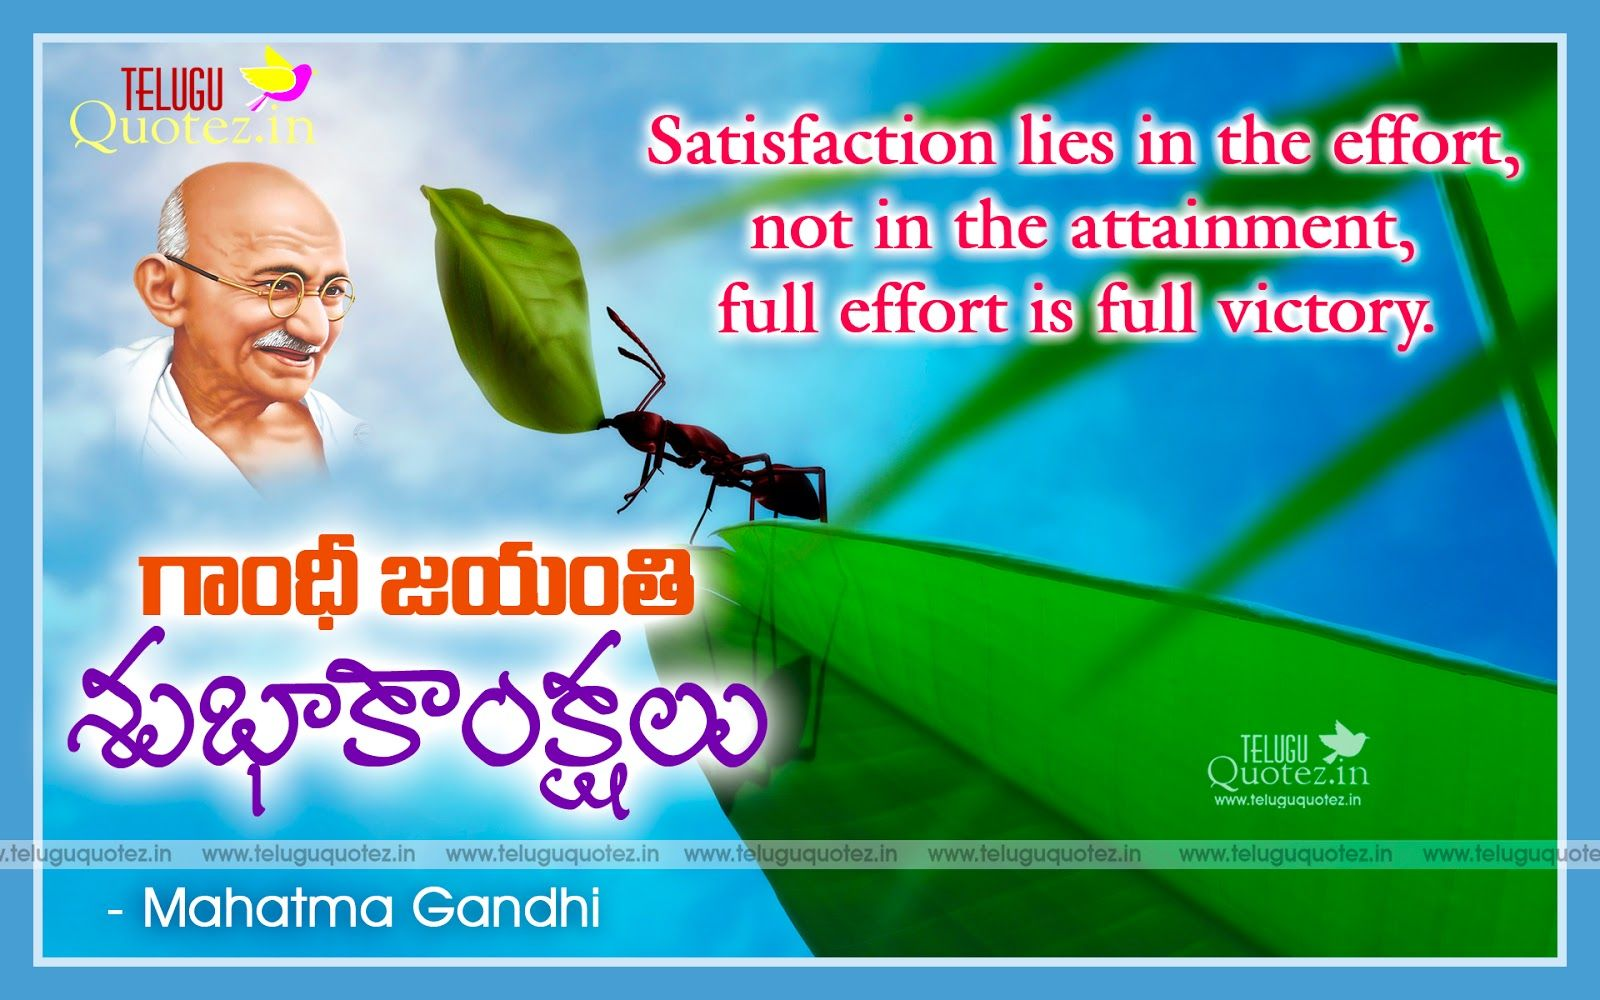 Happy Gandhi Jayanthi Telugu Wishes Quotes Hd Images Free